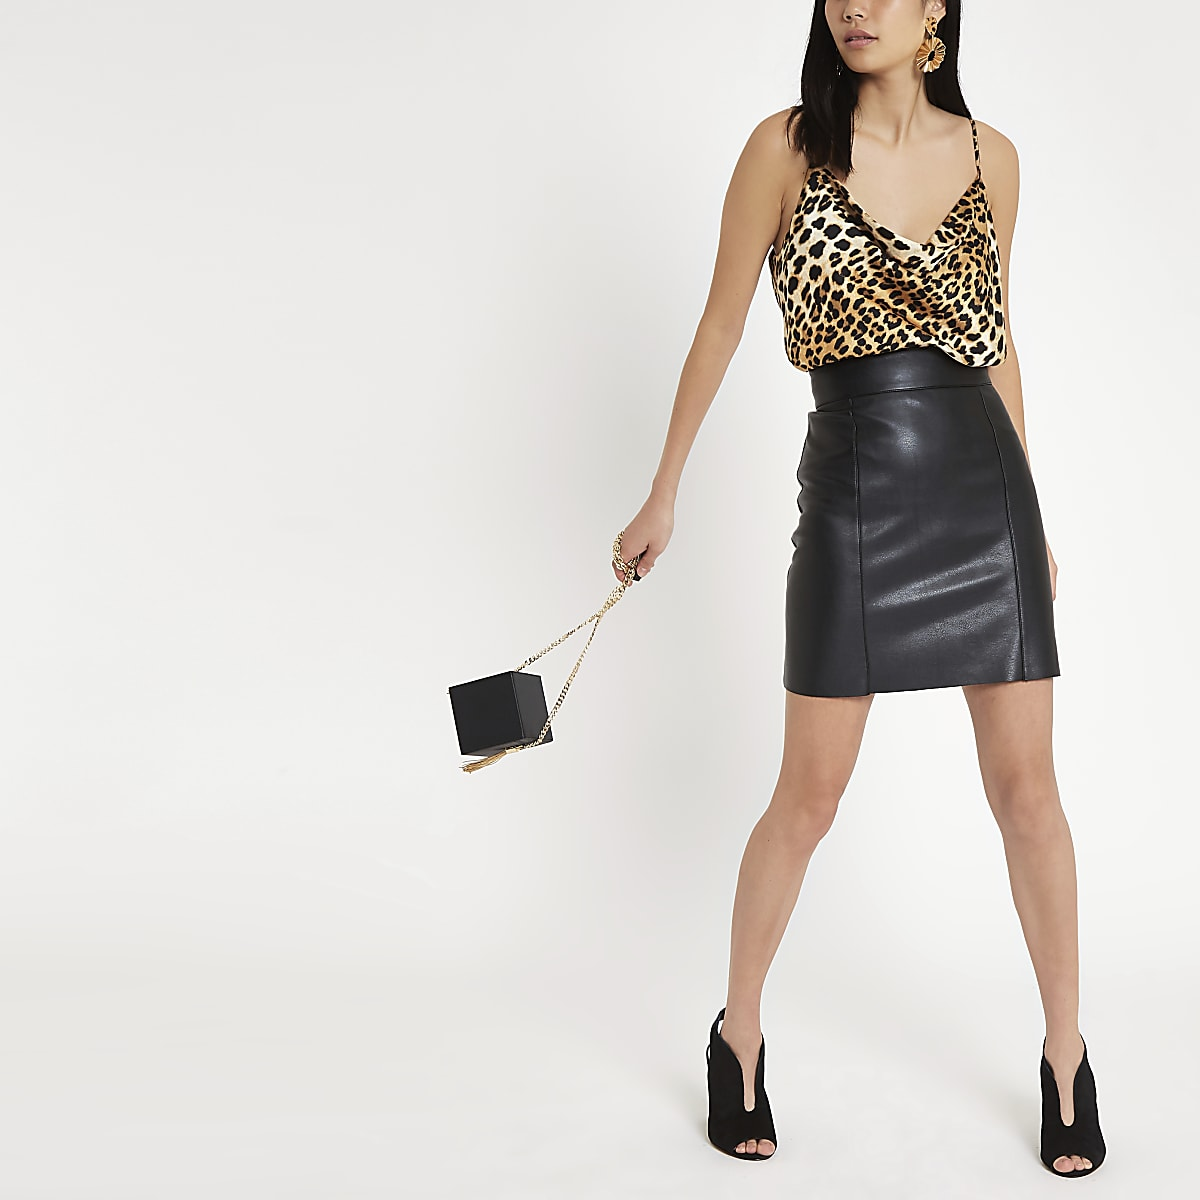 18f6143556 Black faux leather mini skirt - Mini Skirts - Skirts - women